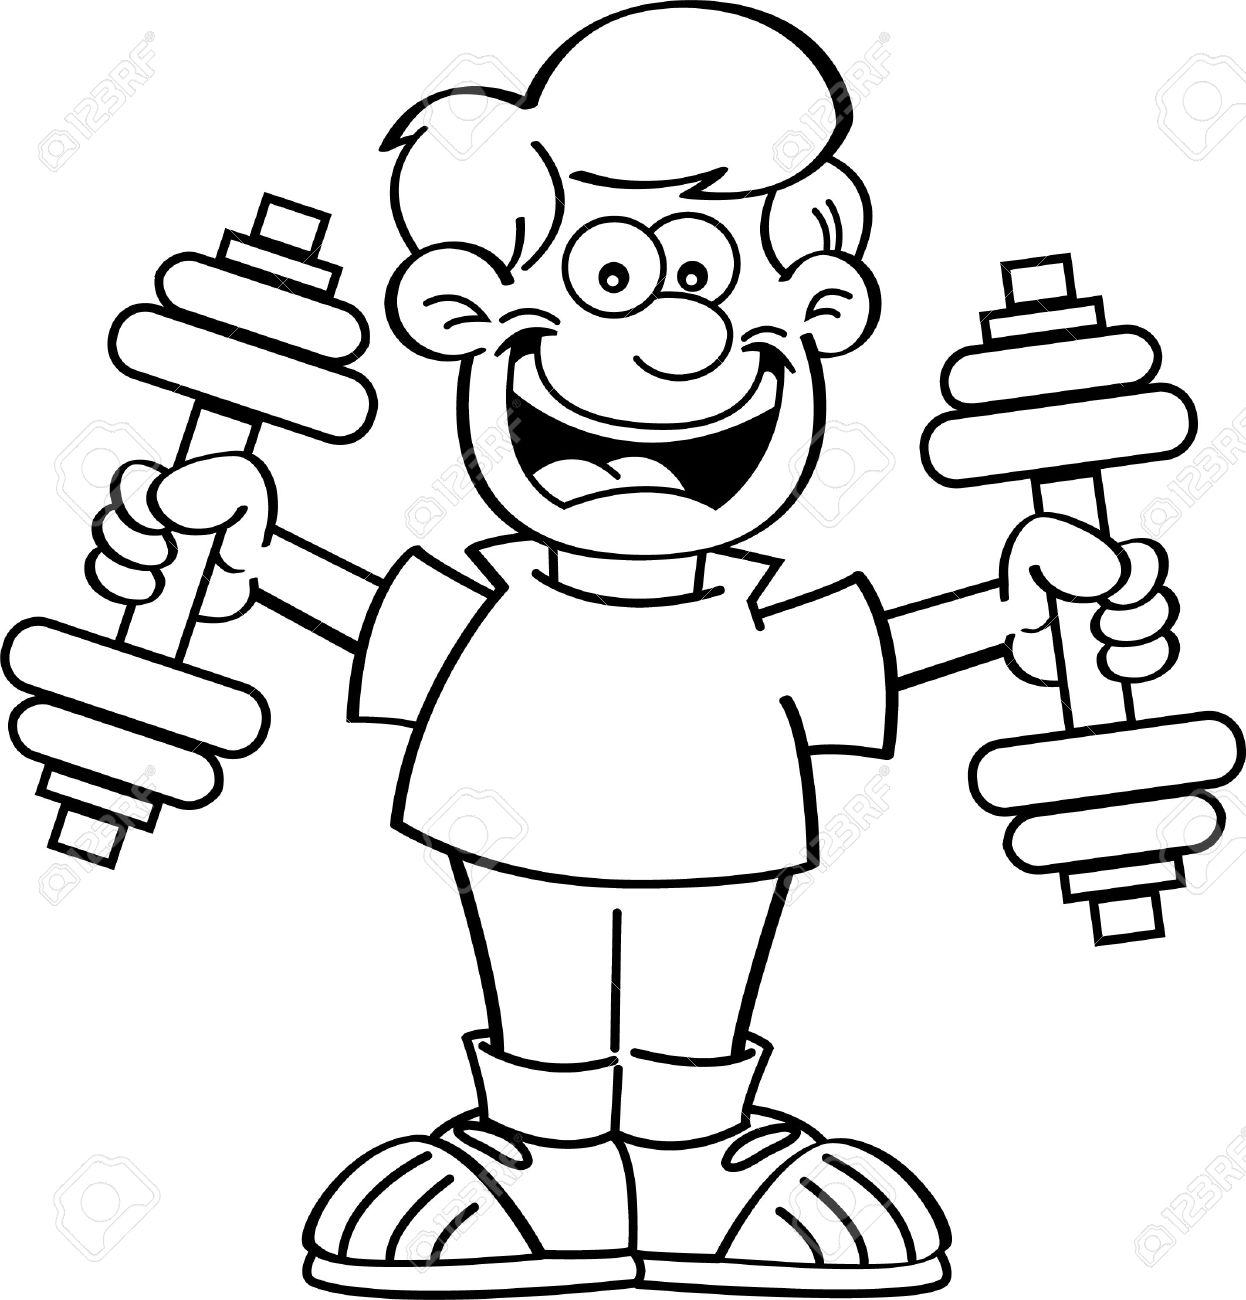 Workout clipart line art. Exercising drawing at getdrawings